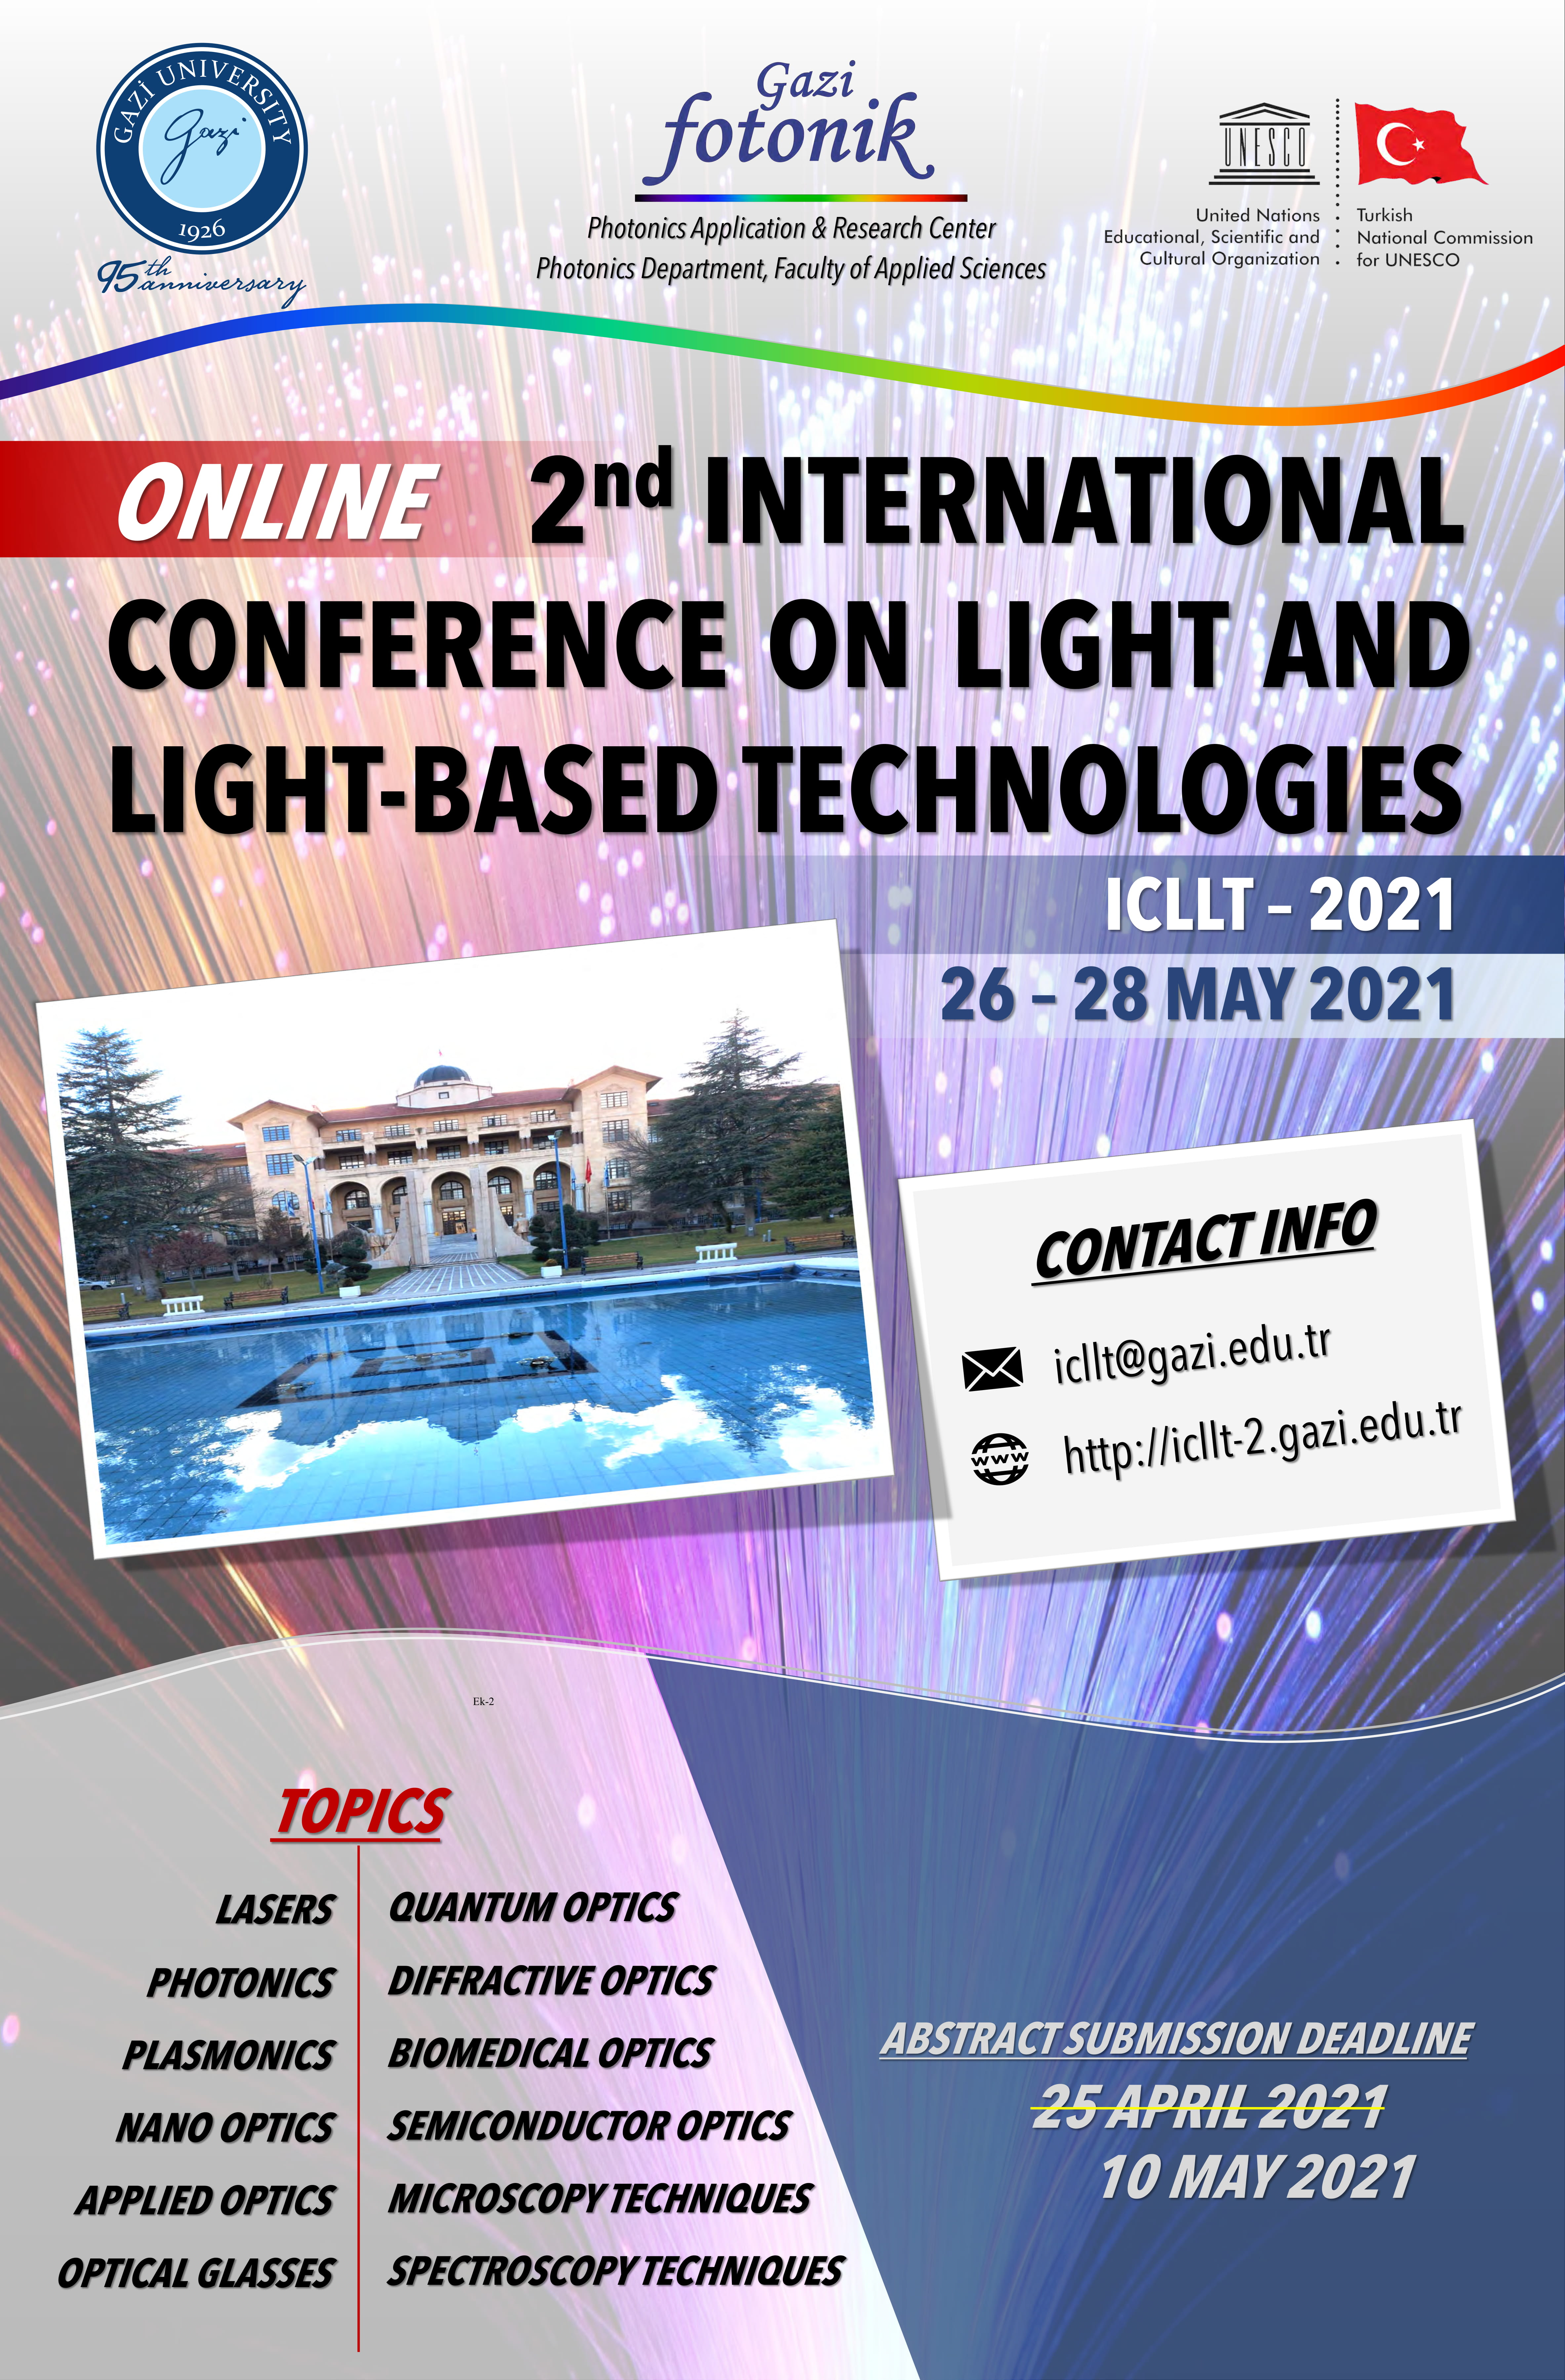 Online 2nd International Conference on Light and Light-Based Technologies -ICLLT 2021